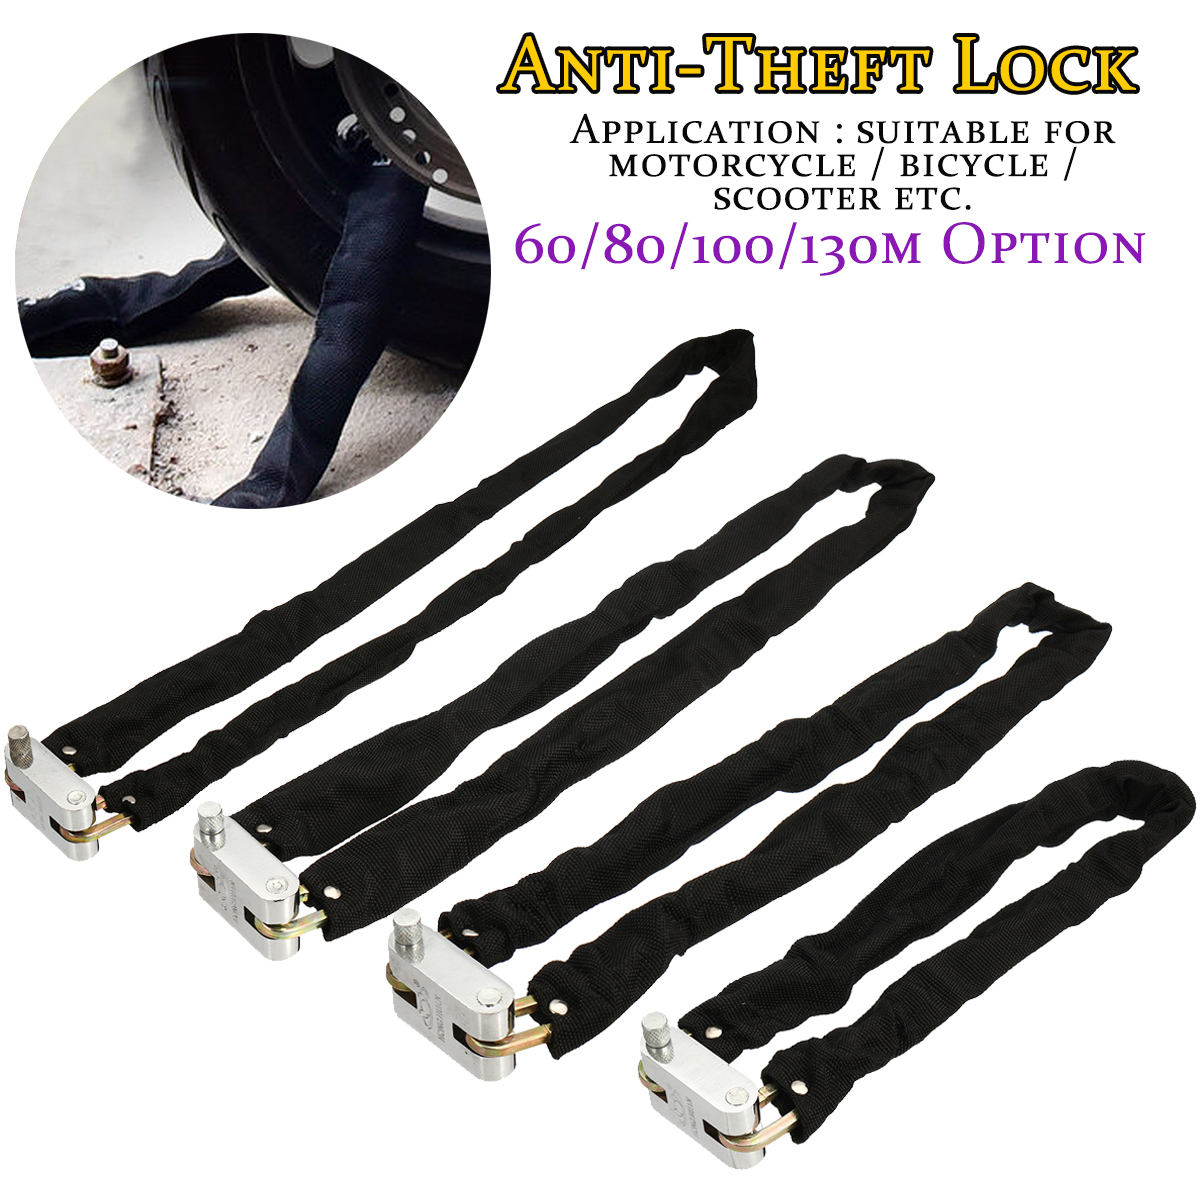 60-130cm Motorcycle Bicycle Scooter Lock Chain Lock Padlock Security Anti-theft